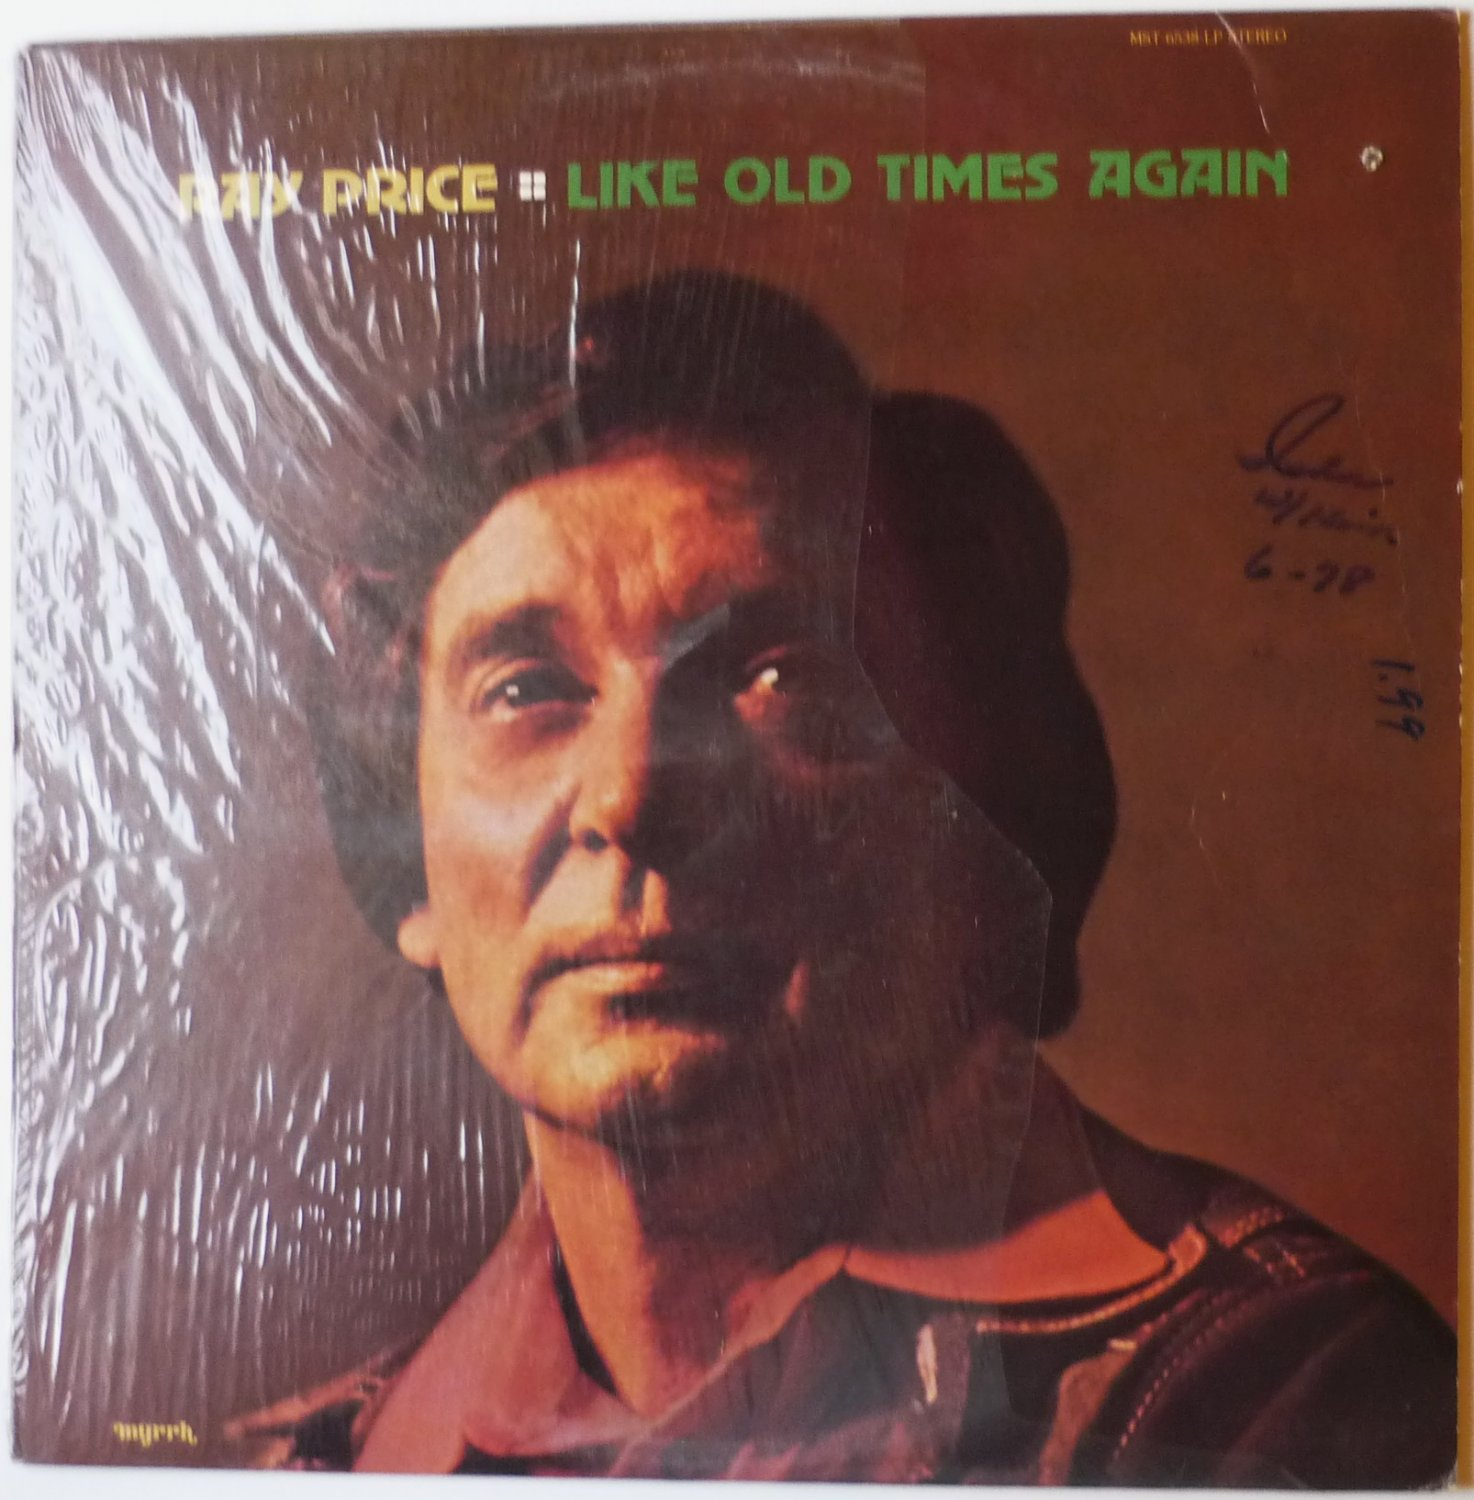 Like Old Times Again lp by Ray Price